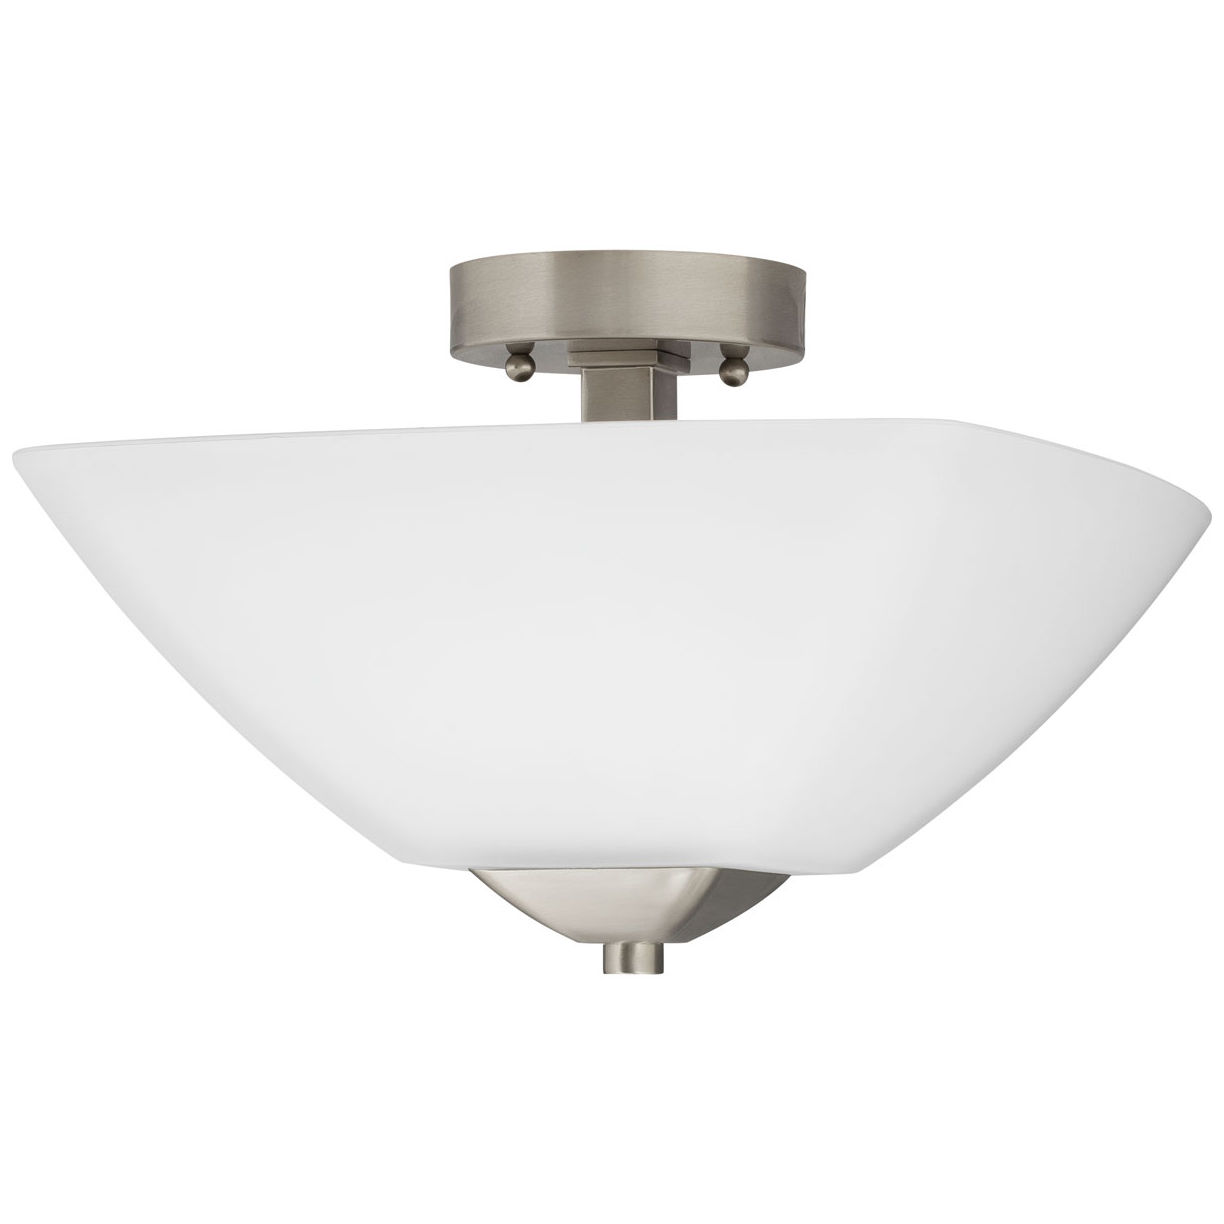 Shop All Miseno Ceiling Fixtures!